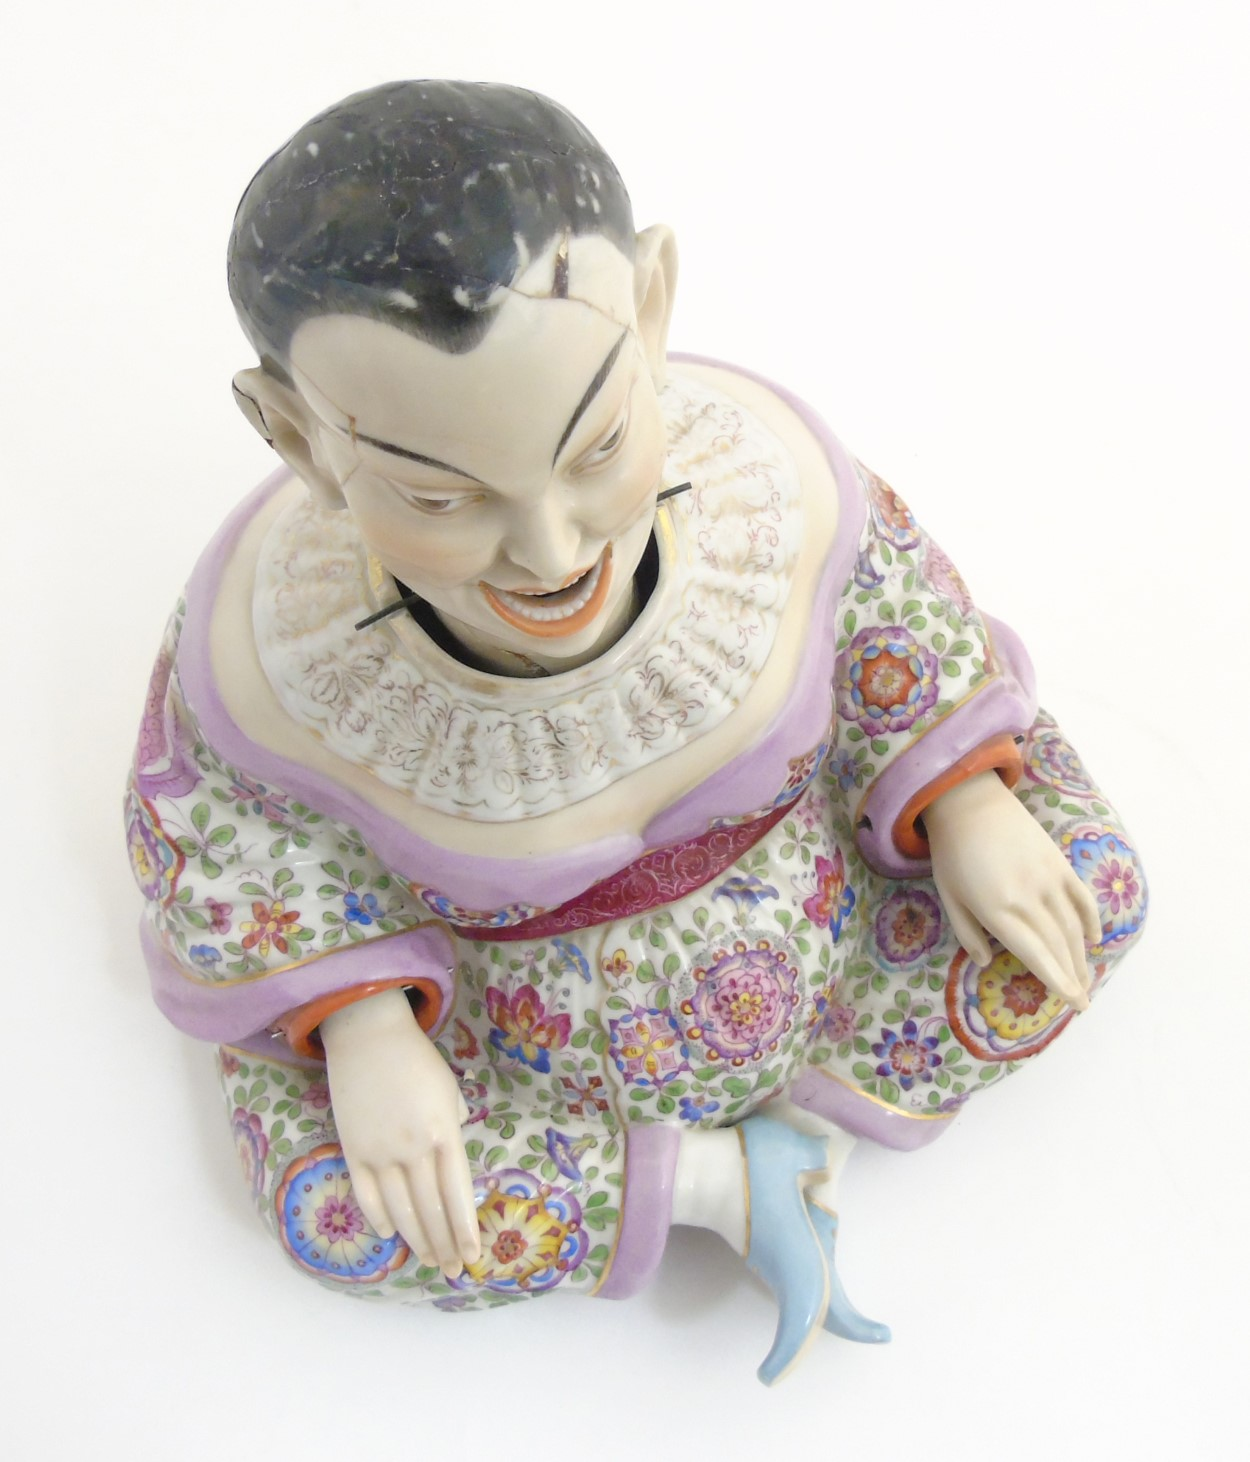 Lot 51 - A Schierholz porcelain figure of a Chinese / Oriental man with nodding head and articulate hands,